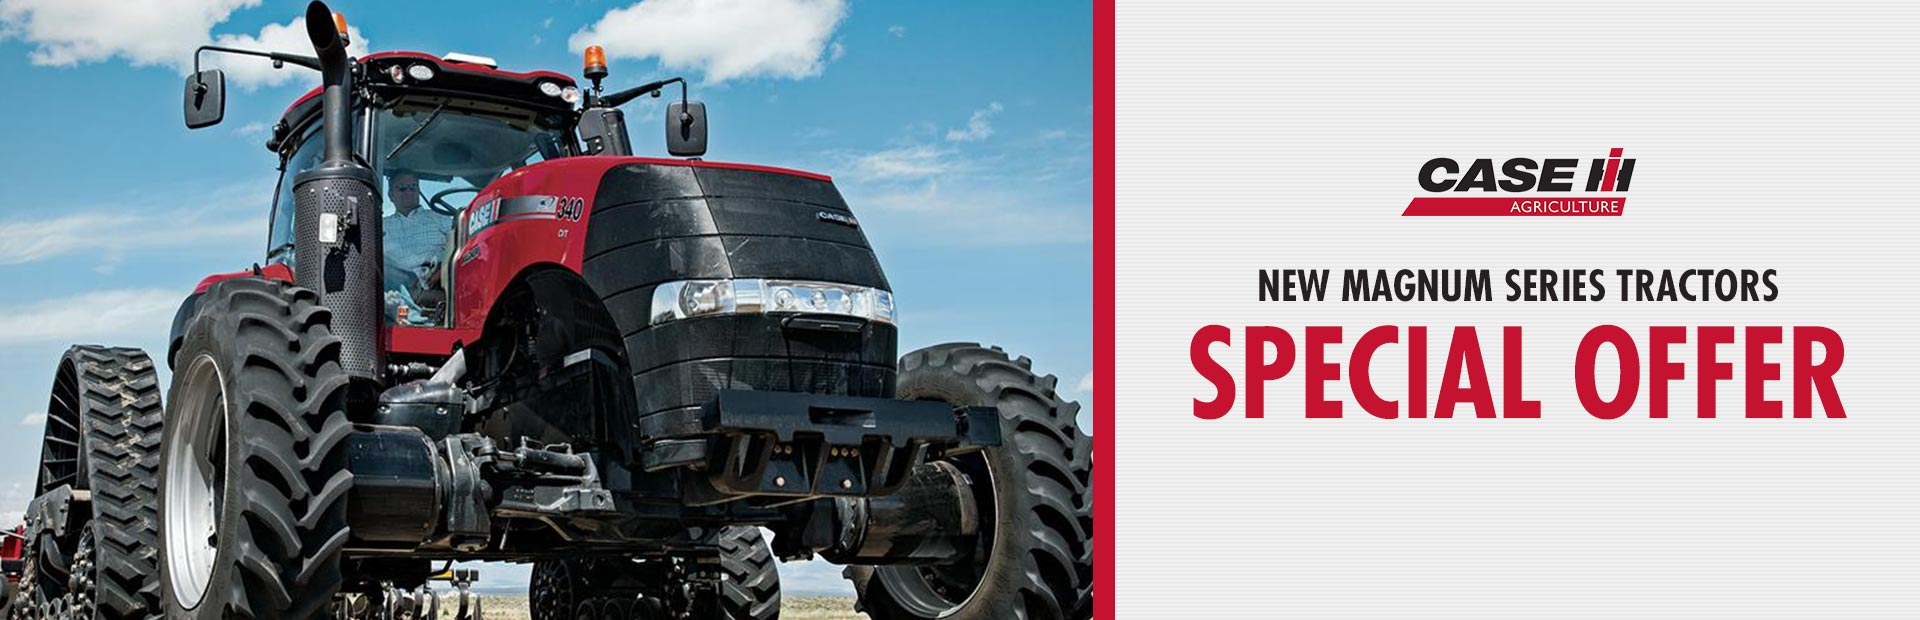 Case IH: New Magnum Series Tractors Special Offer